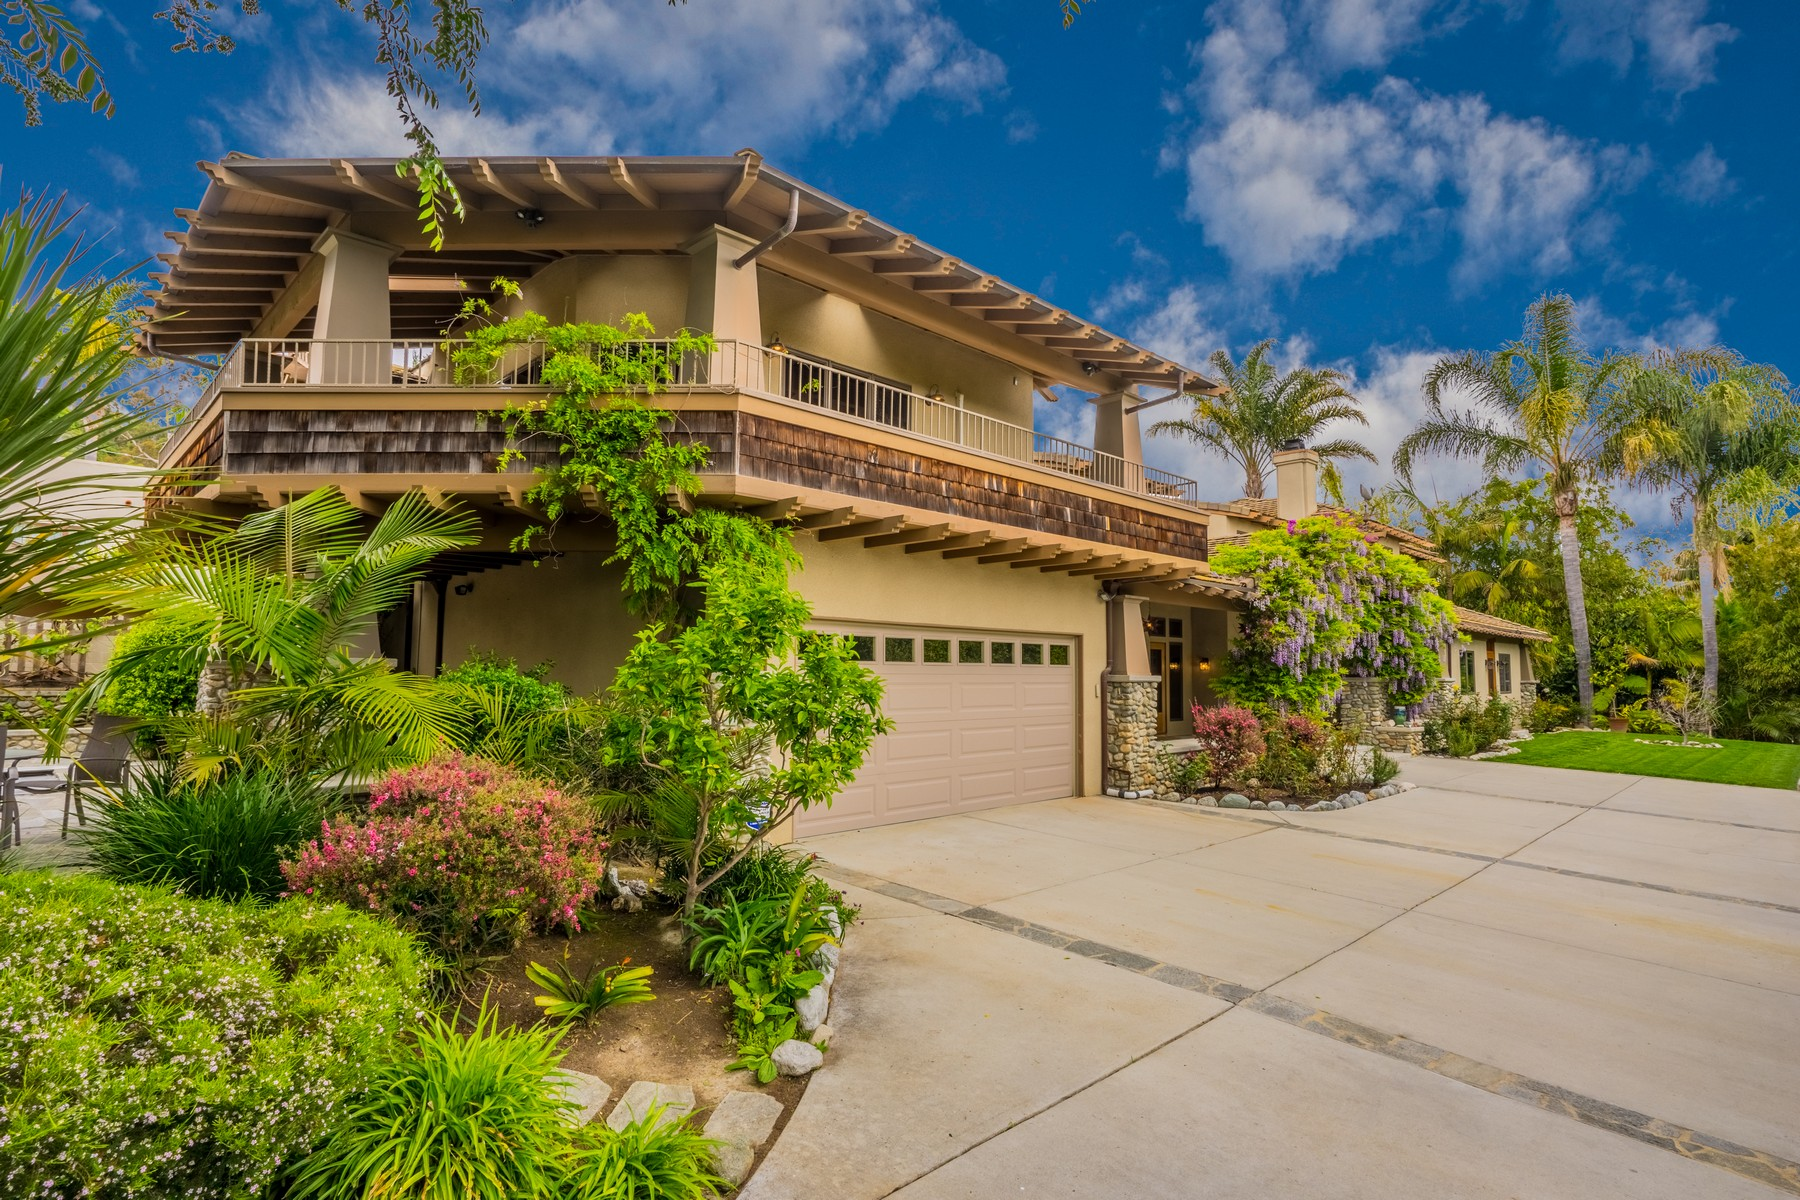 Single Family Home for Sale at 3190 Jenkins Street San Diego, California, 92106 United States